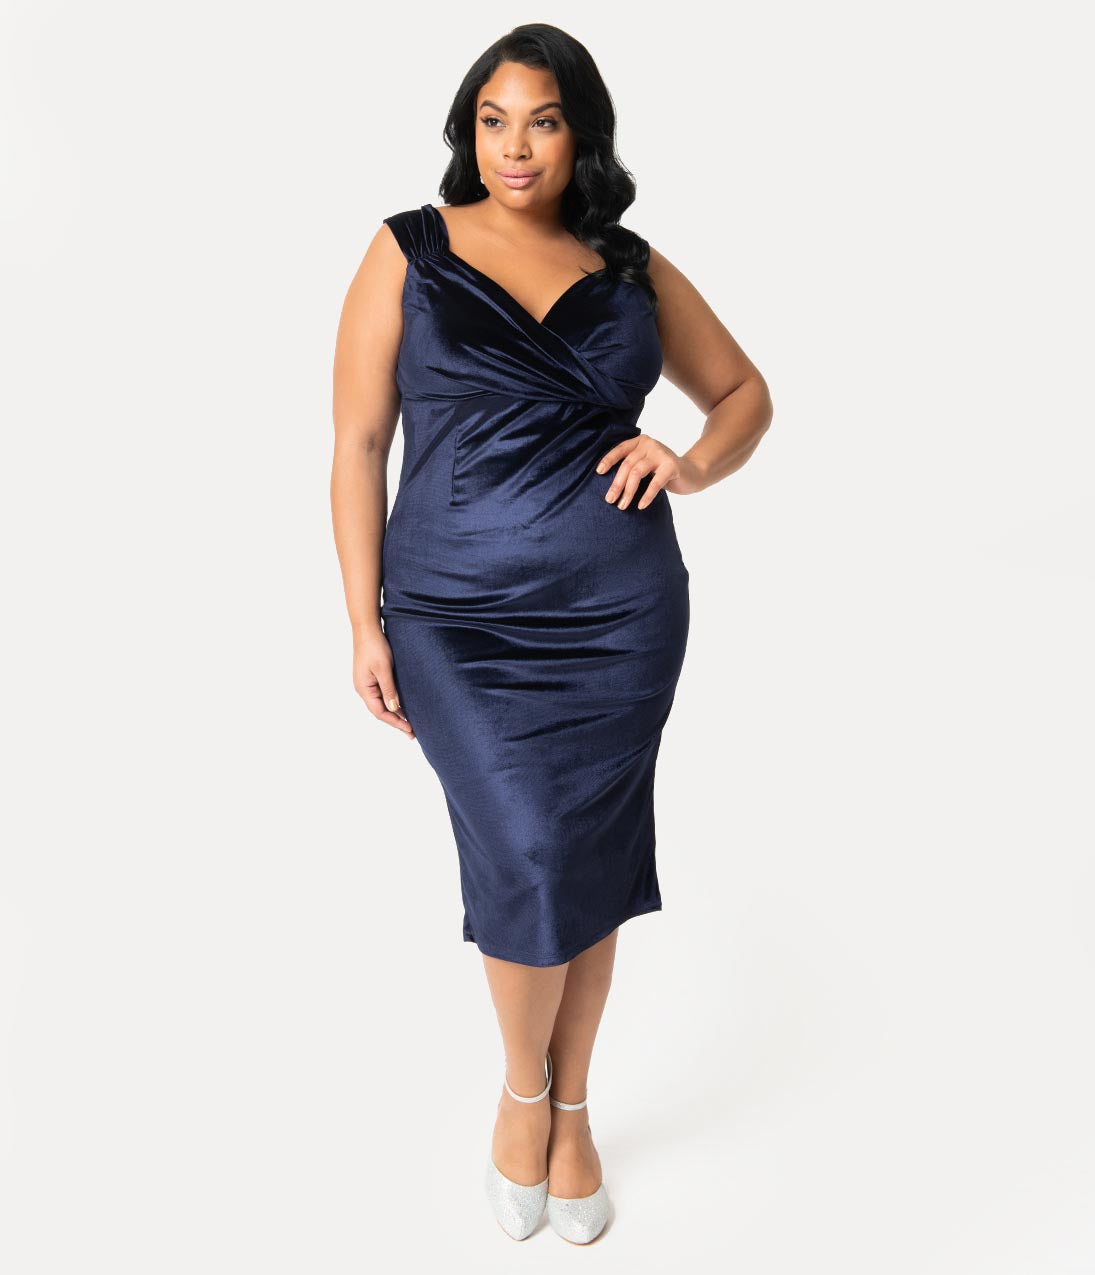 1950s Plus Size Dresses, Clothing and Costumes Steady Plus Size 1950S Gucci Blue Velvet Sleeved Diva Wiggle Dress $82.00 AT vintagedancer.com